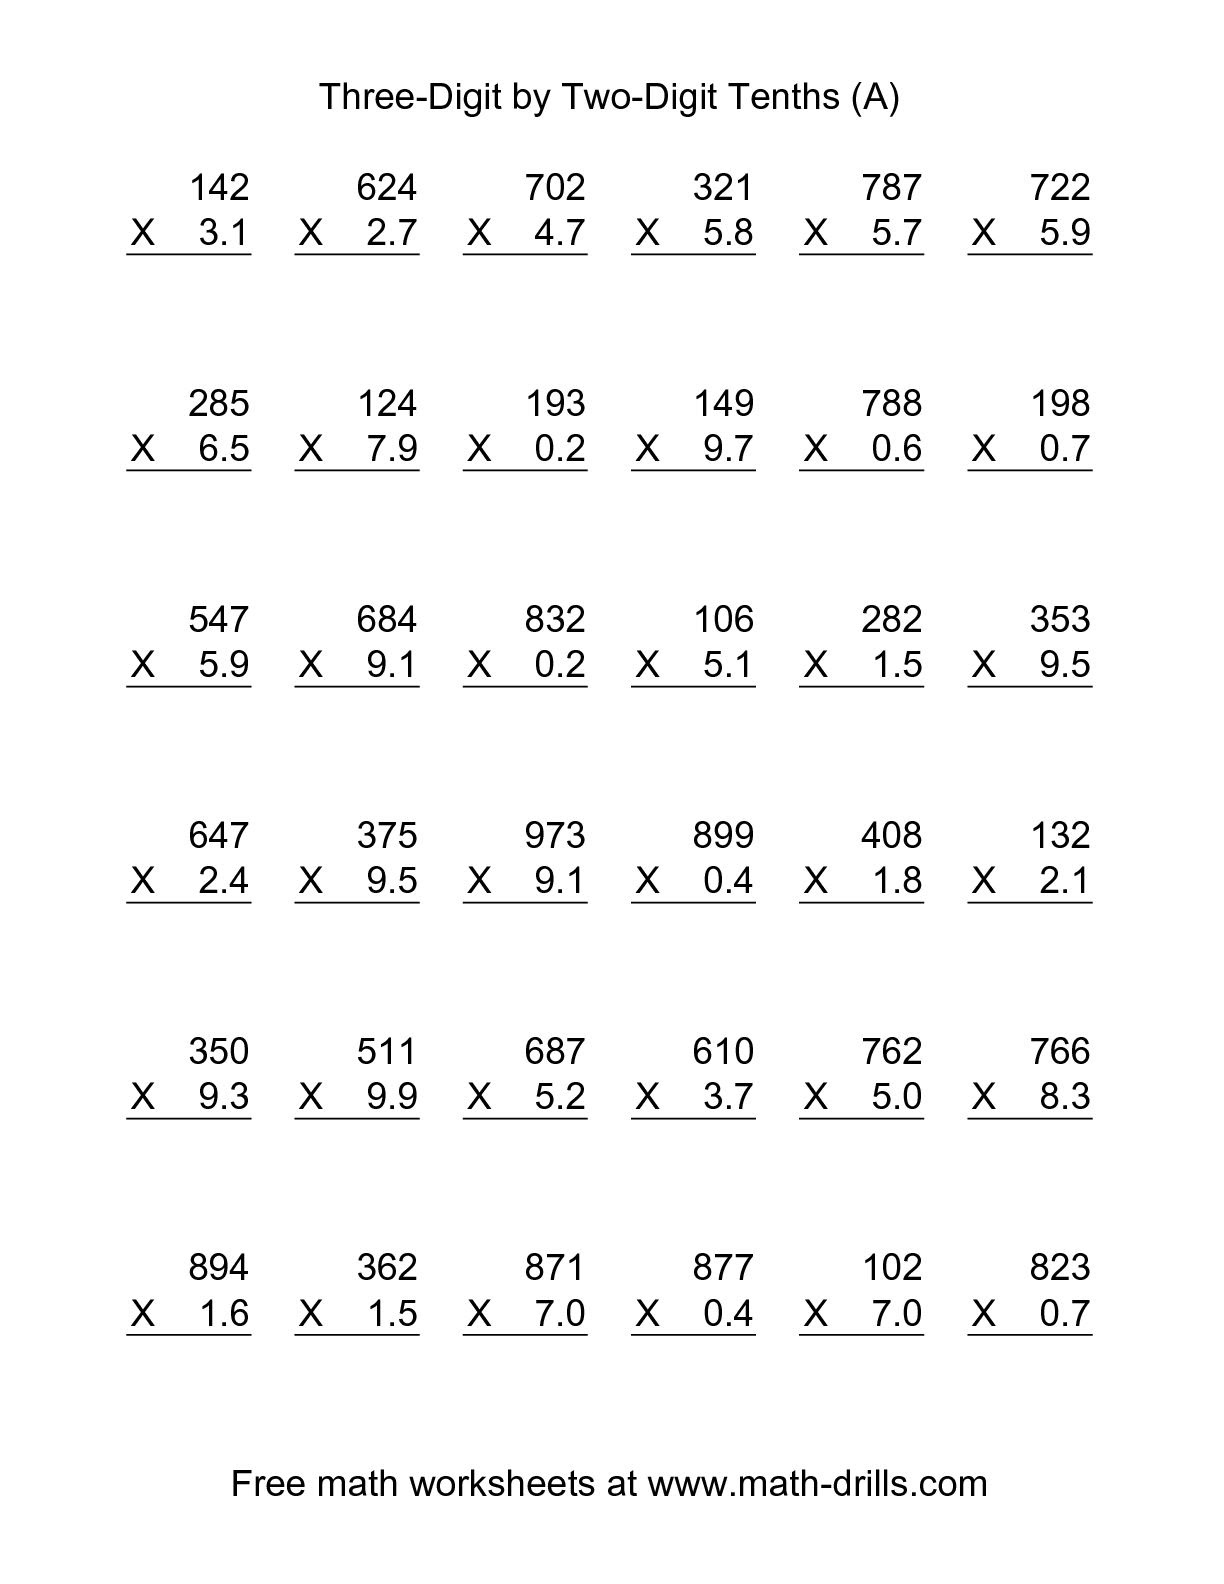 multiplying decimals by whole numbers worksheet_475991